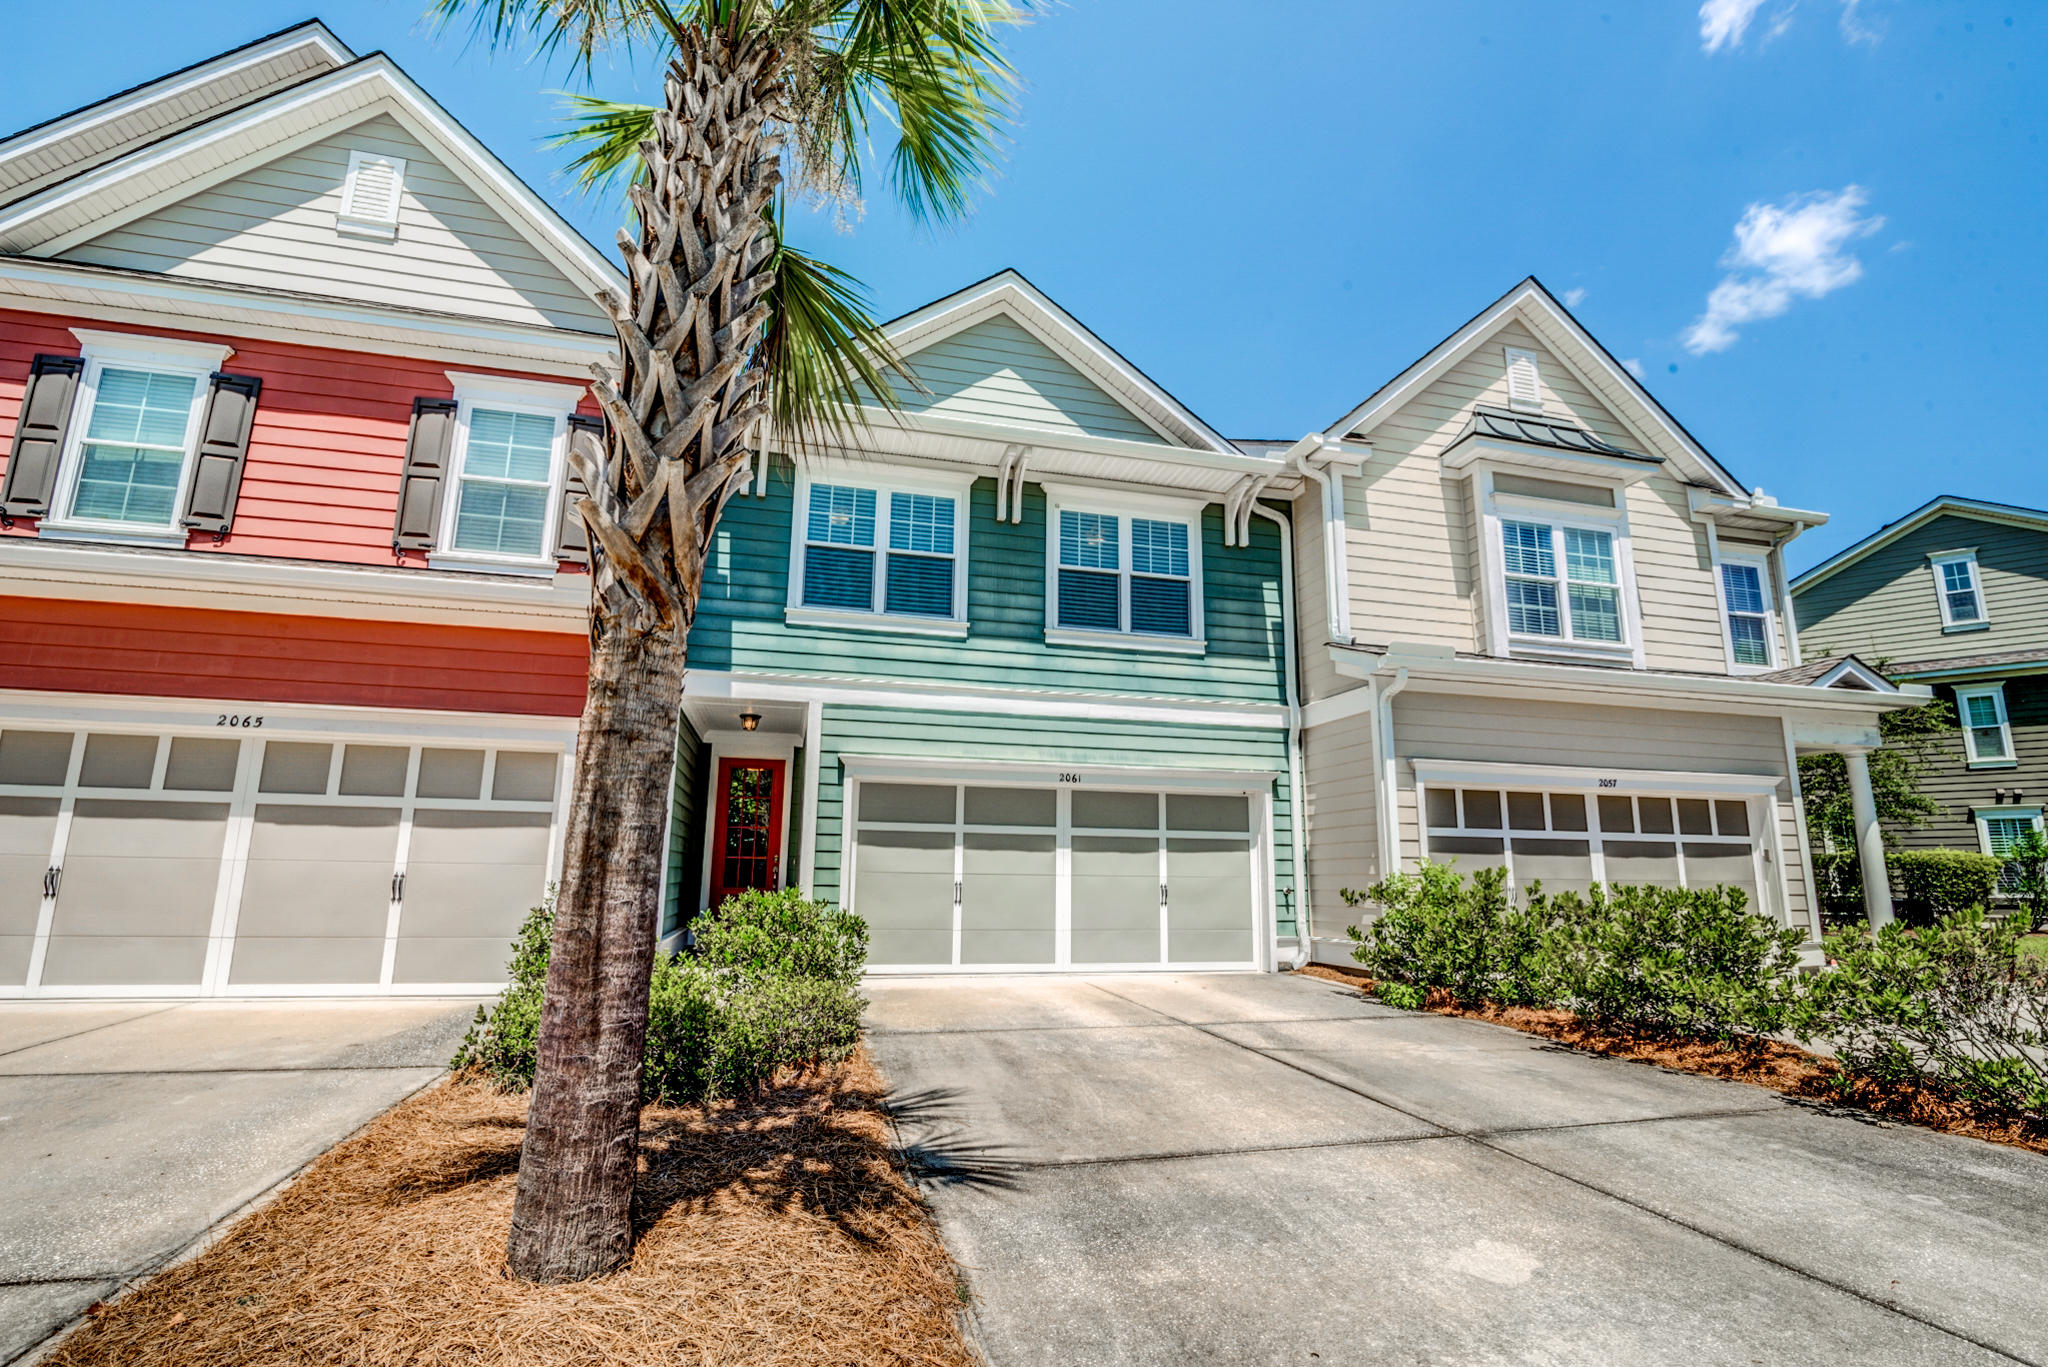 Dunes West Homes For Sale - 2061 Kings Gate, Mount Pleasant, SC - 27